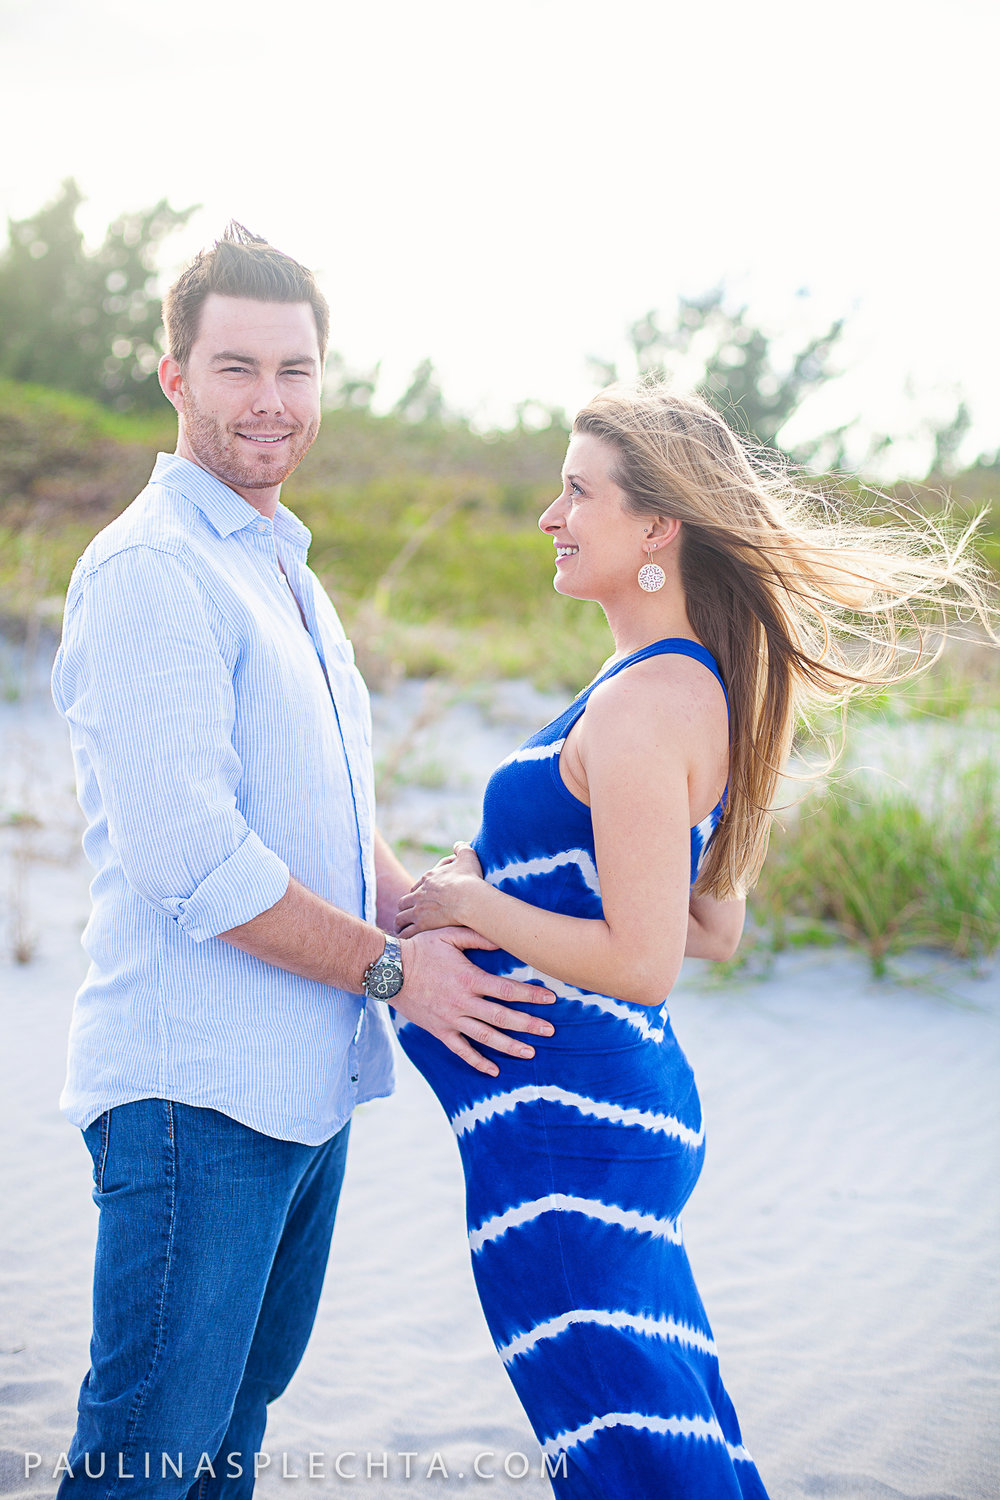 boca-raton-maternity-photographer-pregnancy-photos-shoot-ft-lauderdale-south-florida-gown-dress-newborn-west-palm-beach-delray-1.jpg